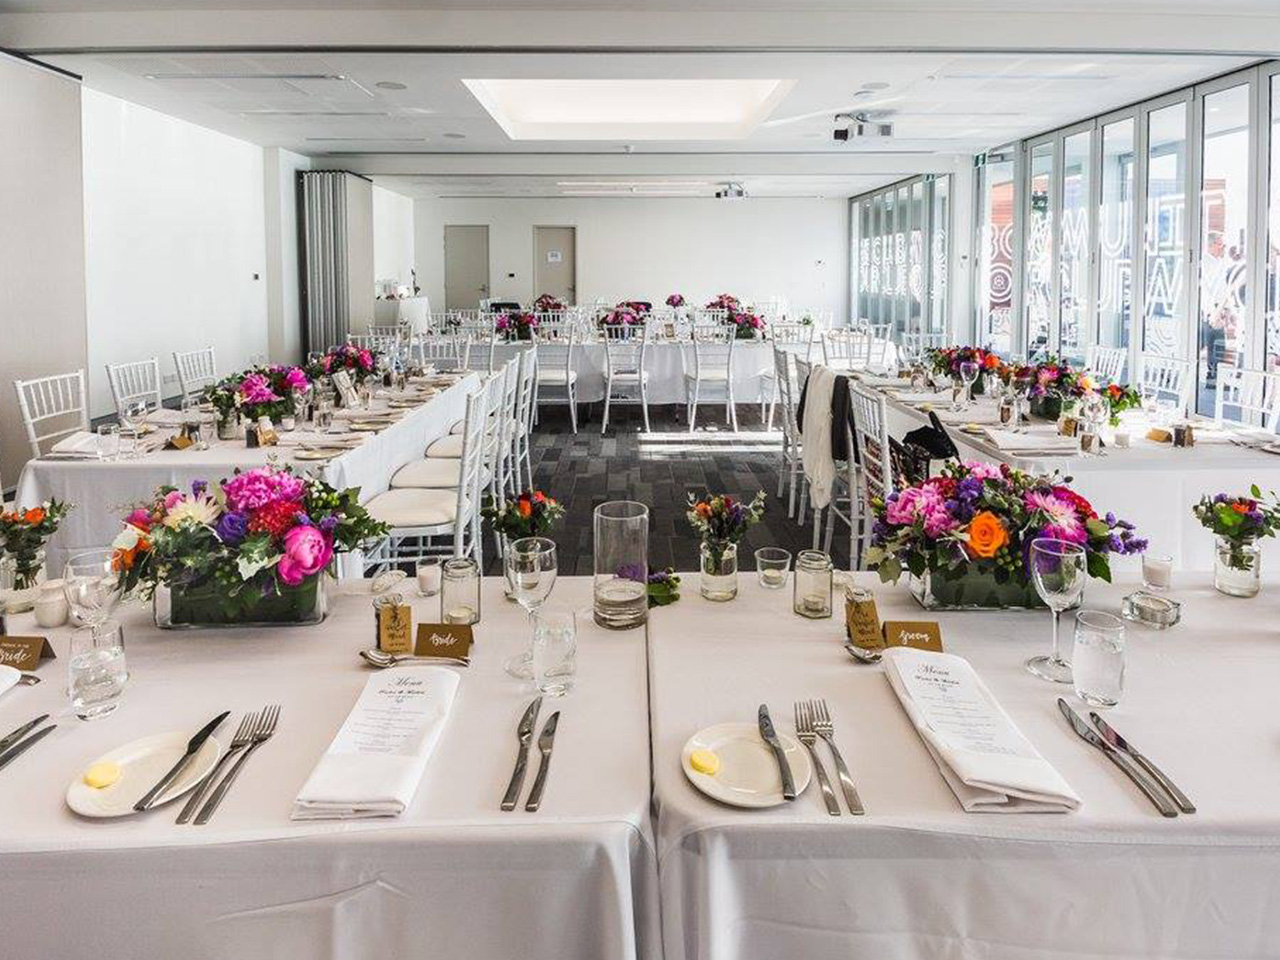 Inside The Function Room With Long Tables And Chairs And Flower Centerpieces Setup